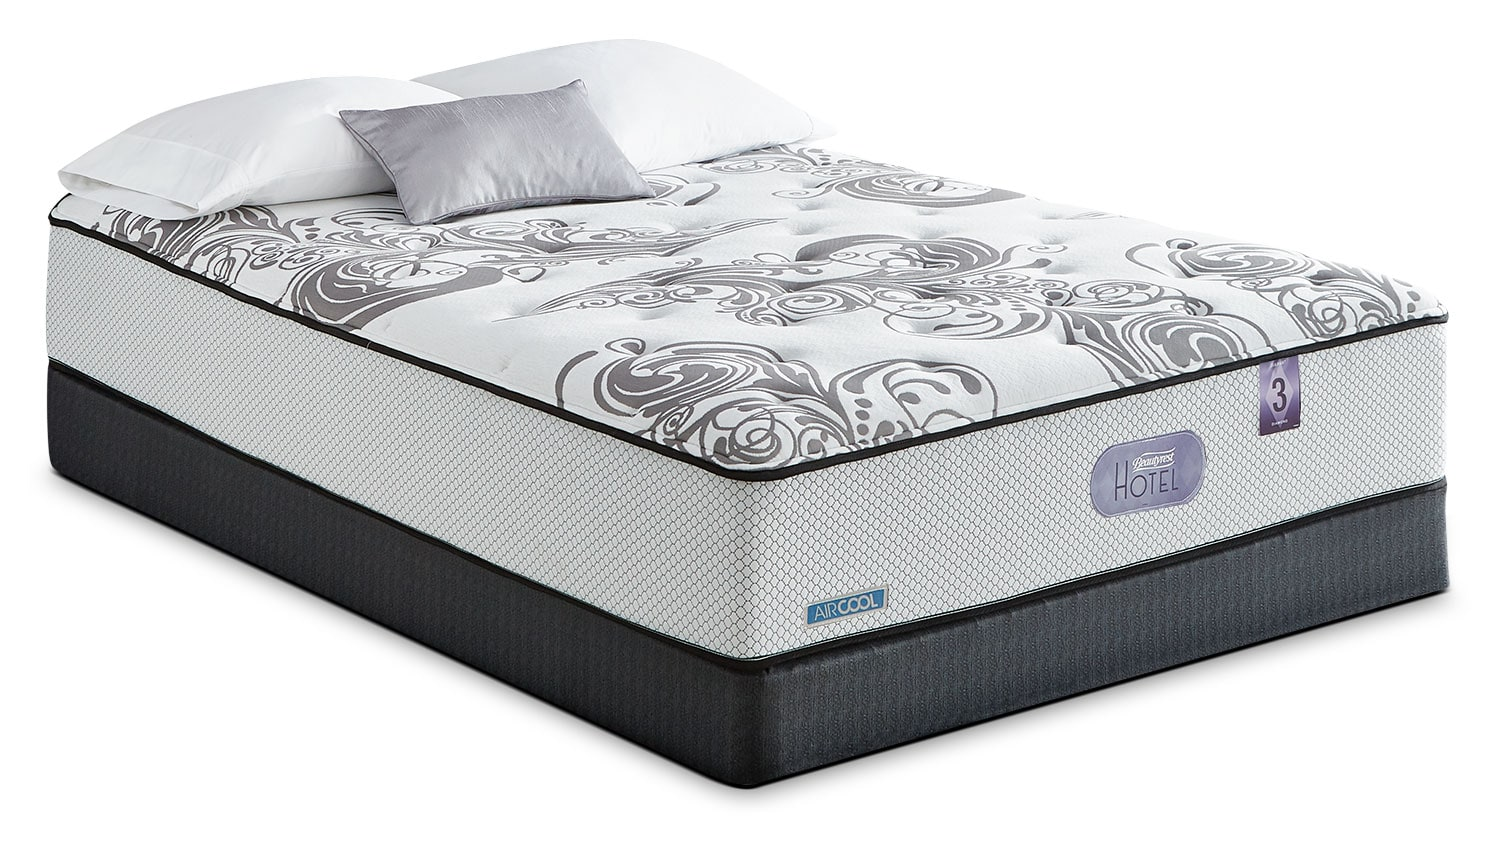 Mattresses and Bedding - Simmons Beautyrest® Hotel Diamond 3.0 Tight-Top Firm Queen Mattress Set